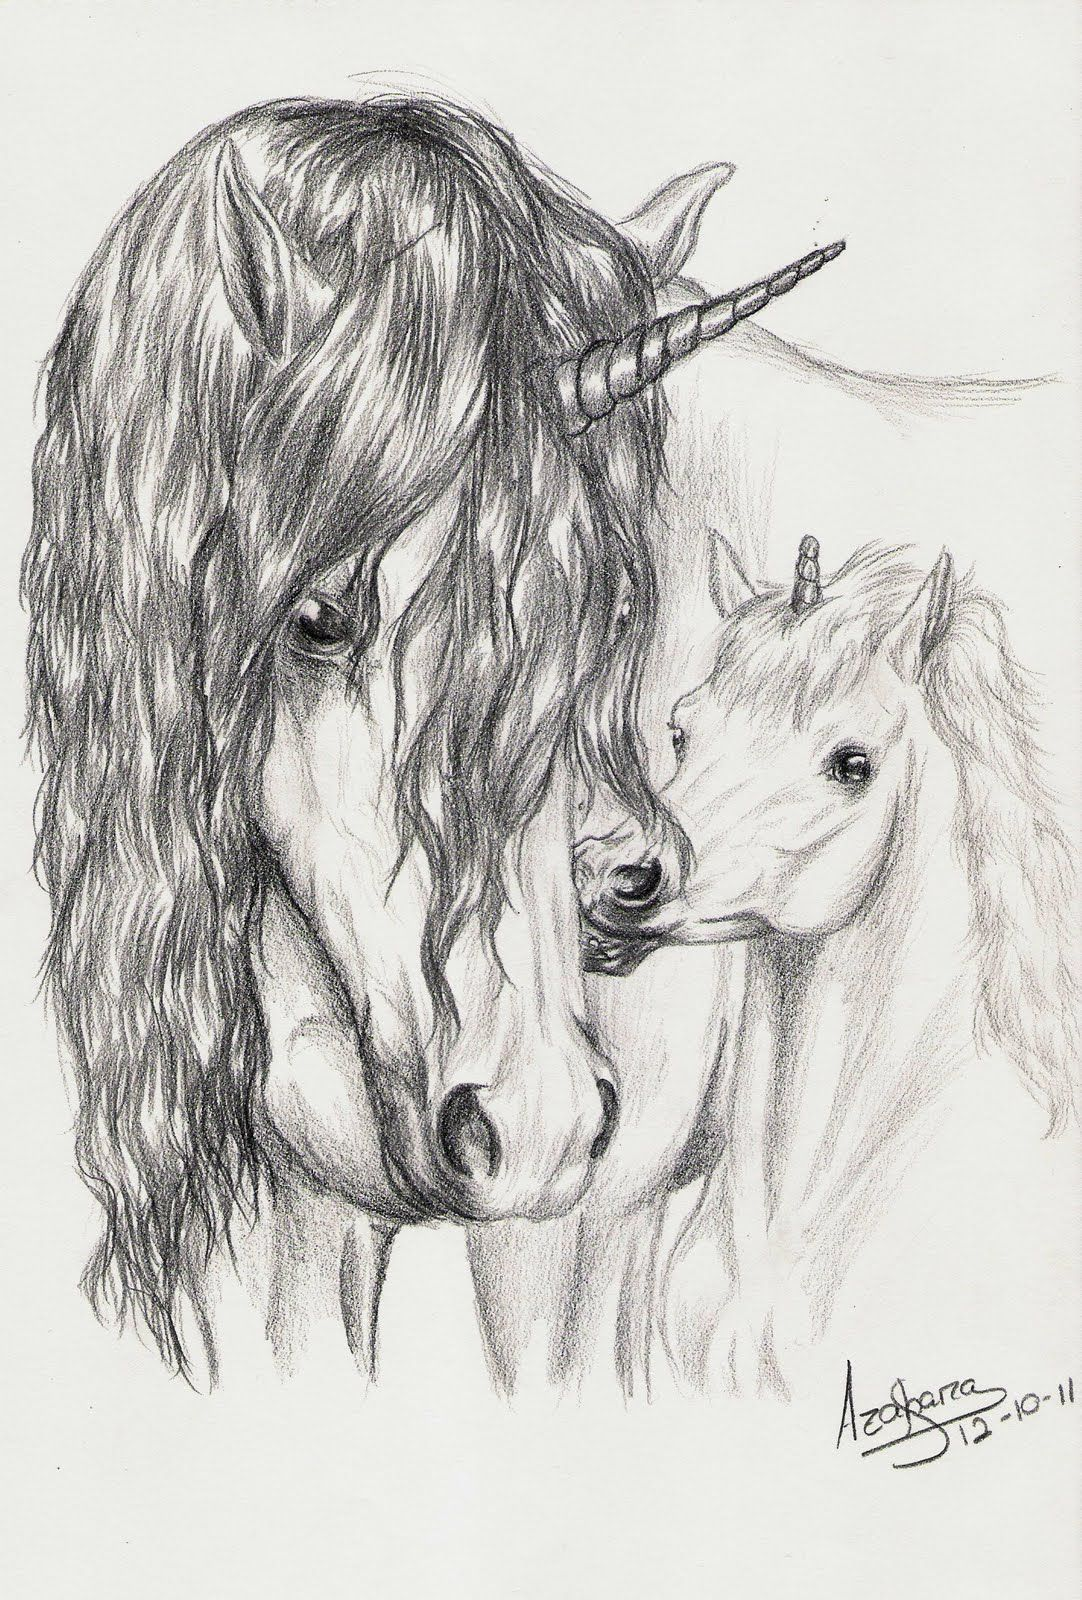 Unicorn horse unicorn art unicorn pictures pencil drawings art drawings van